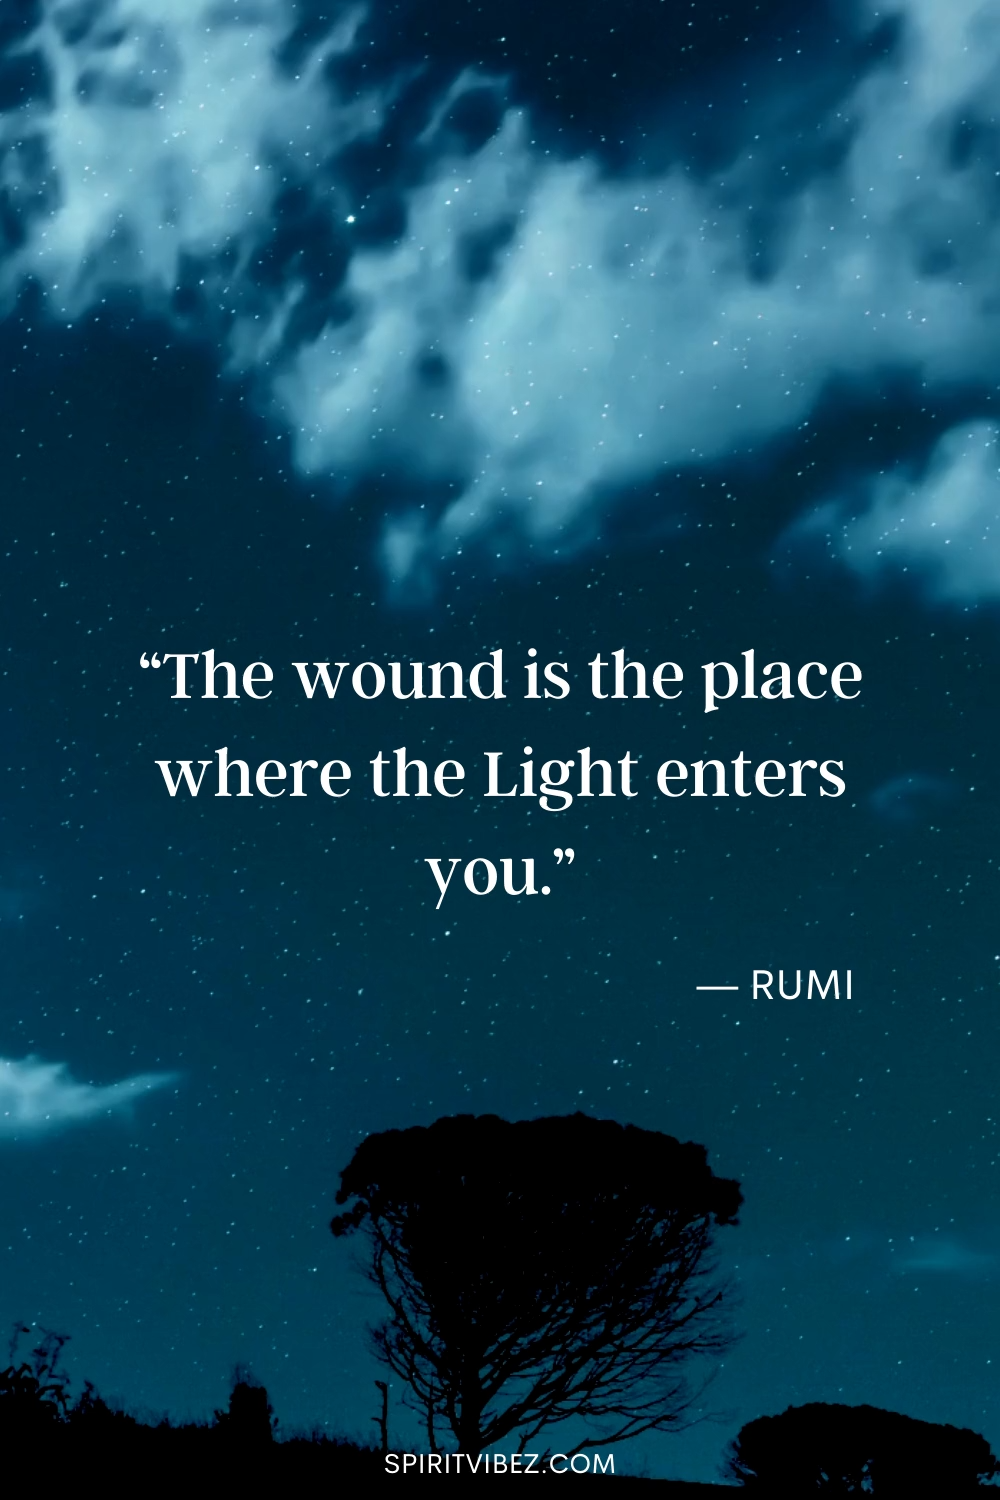 Inspirational Healing Quotes to Help You Move Forward